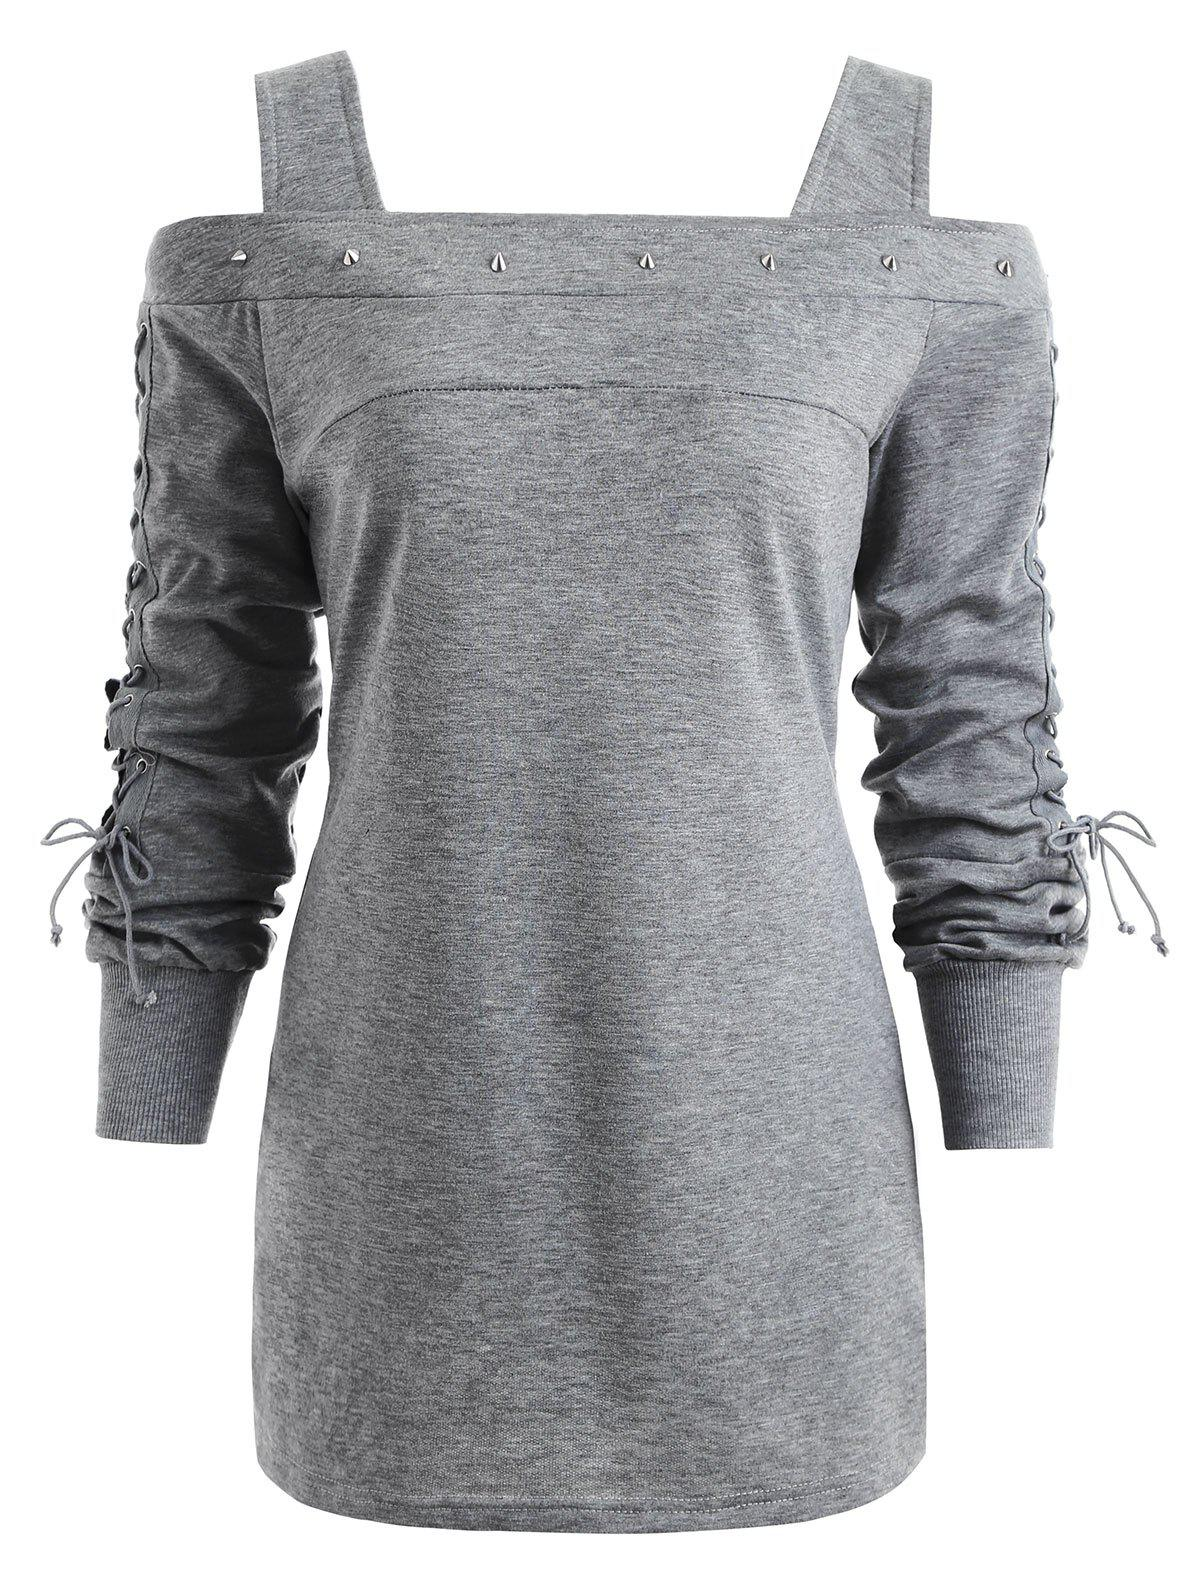 Rivet Lace-up Long Sleeve Cold Shoulder T-shirt black lace up cold shoulder long sleeves t shirt